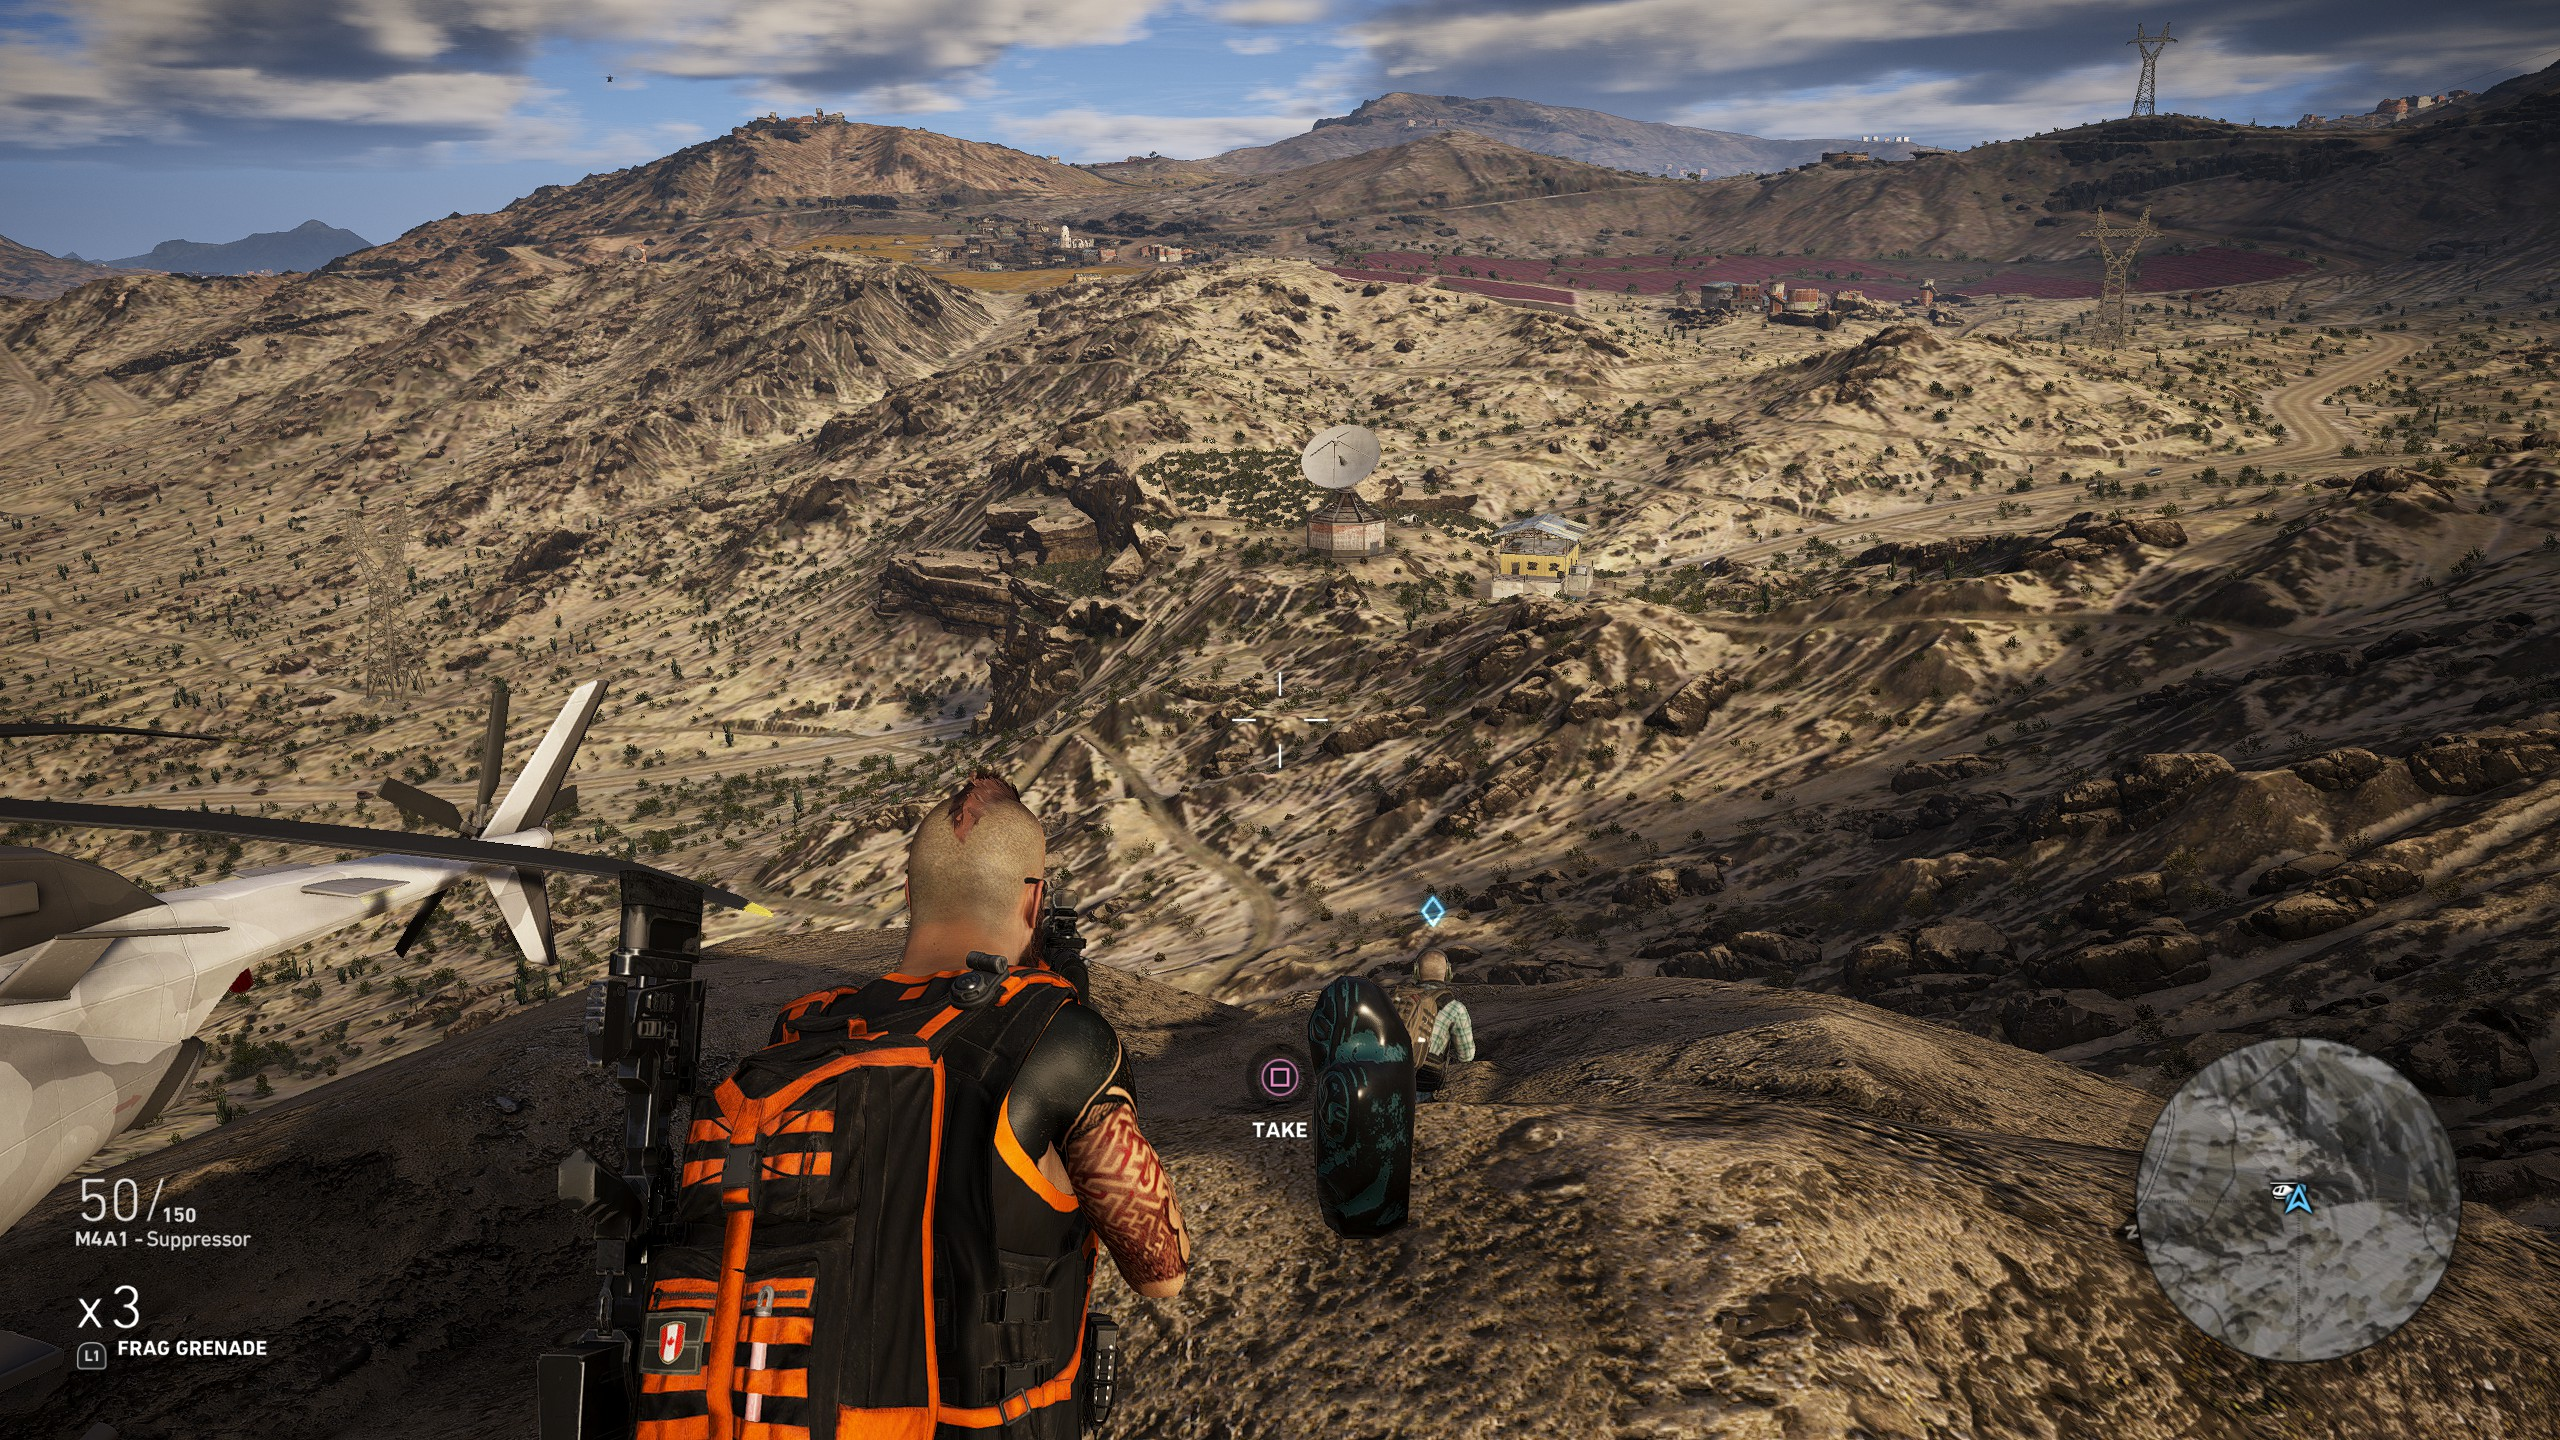 Totem Statue 3 image - Totem locations in Ghost Recon Wildlands